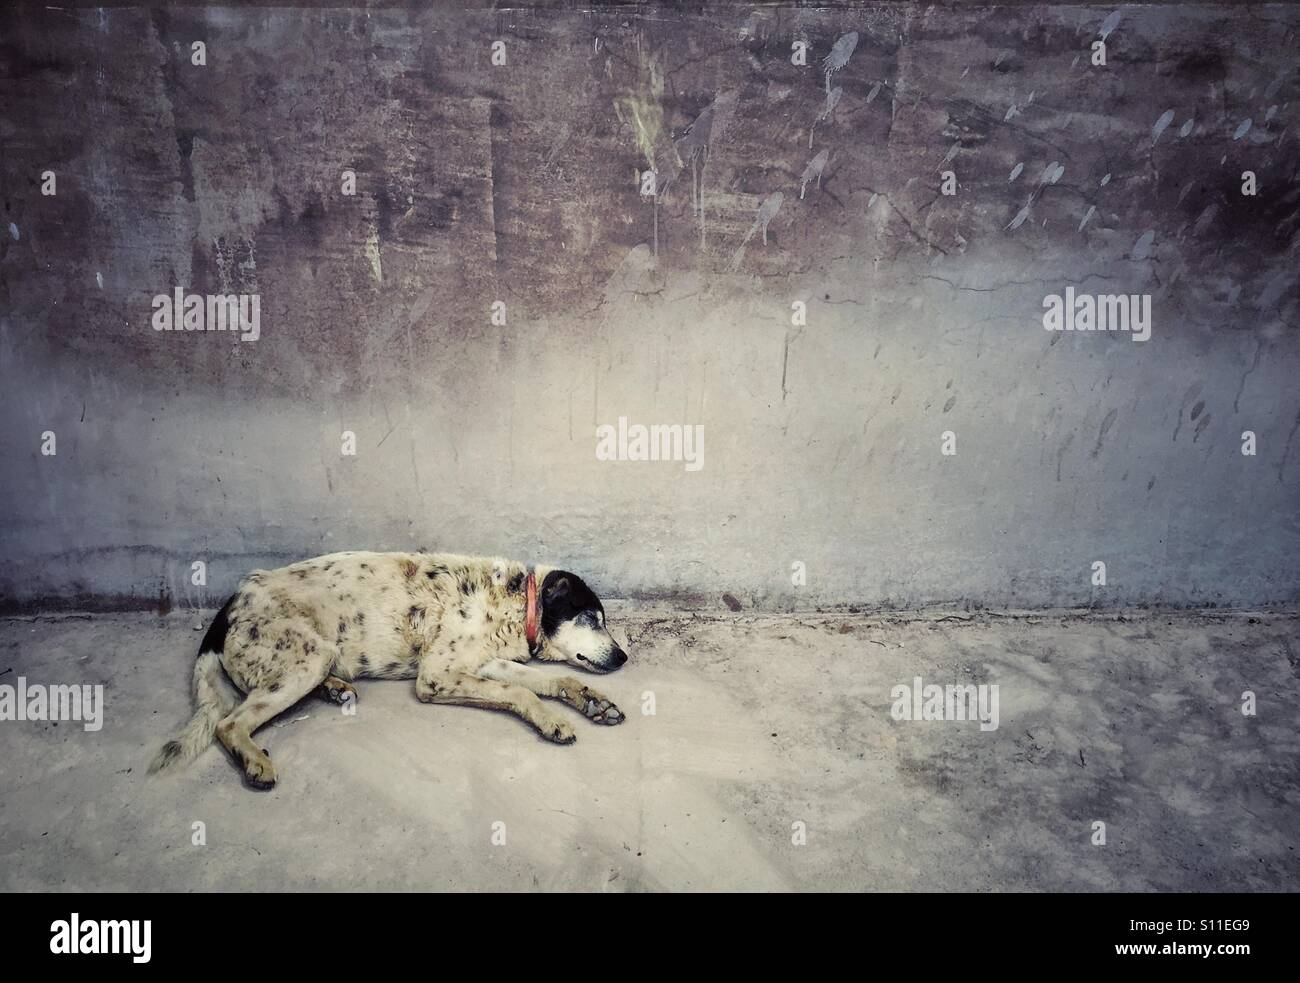 stray dog sleeping near the old wall in Peru - Stock Image